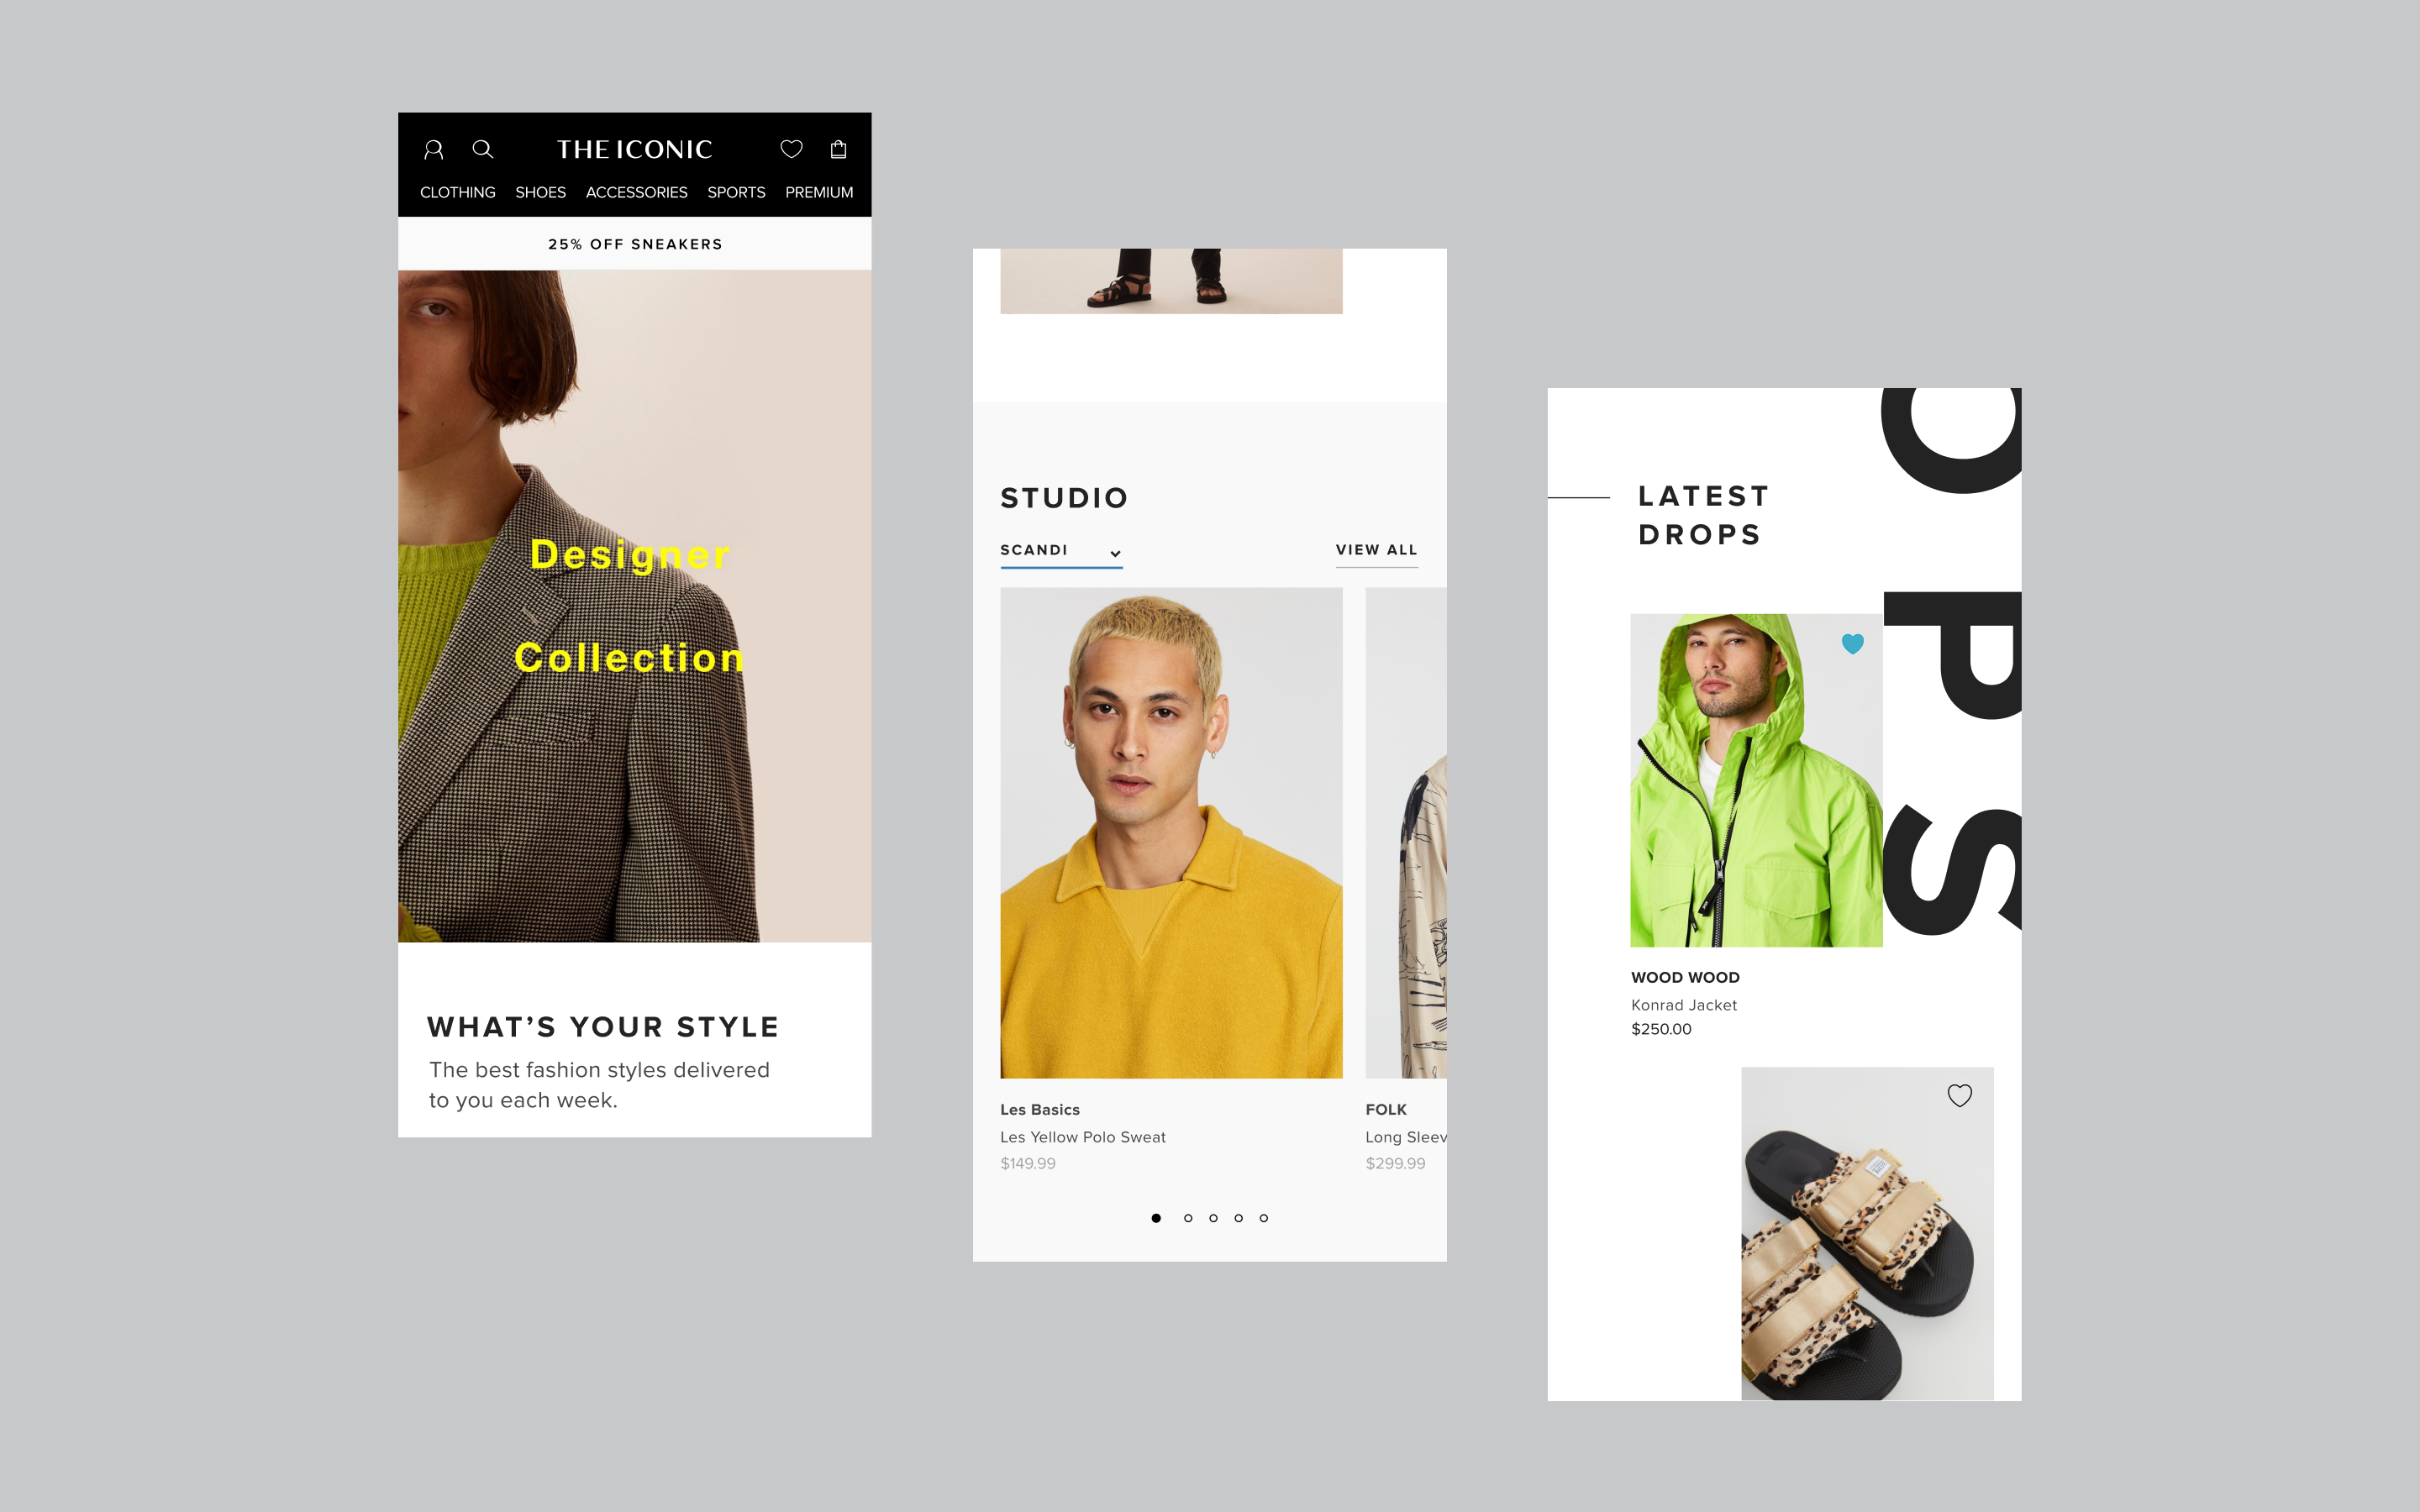 Three screens showcasing different ICONIC website modules all featuring premium clothing